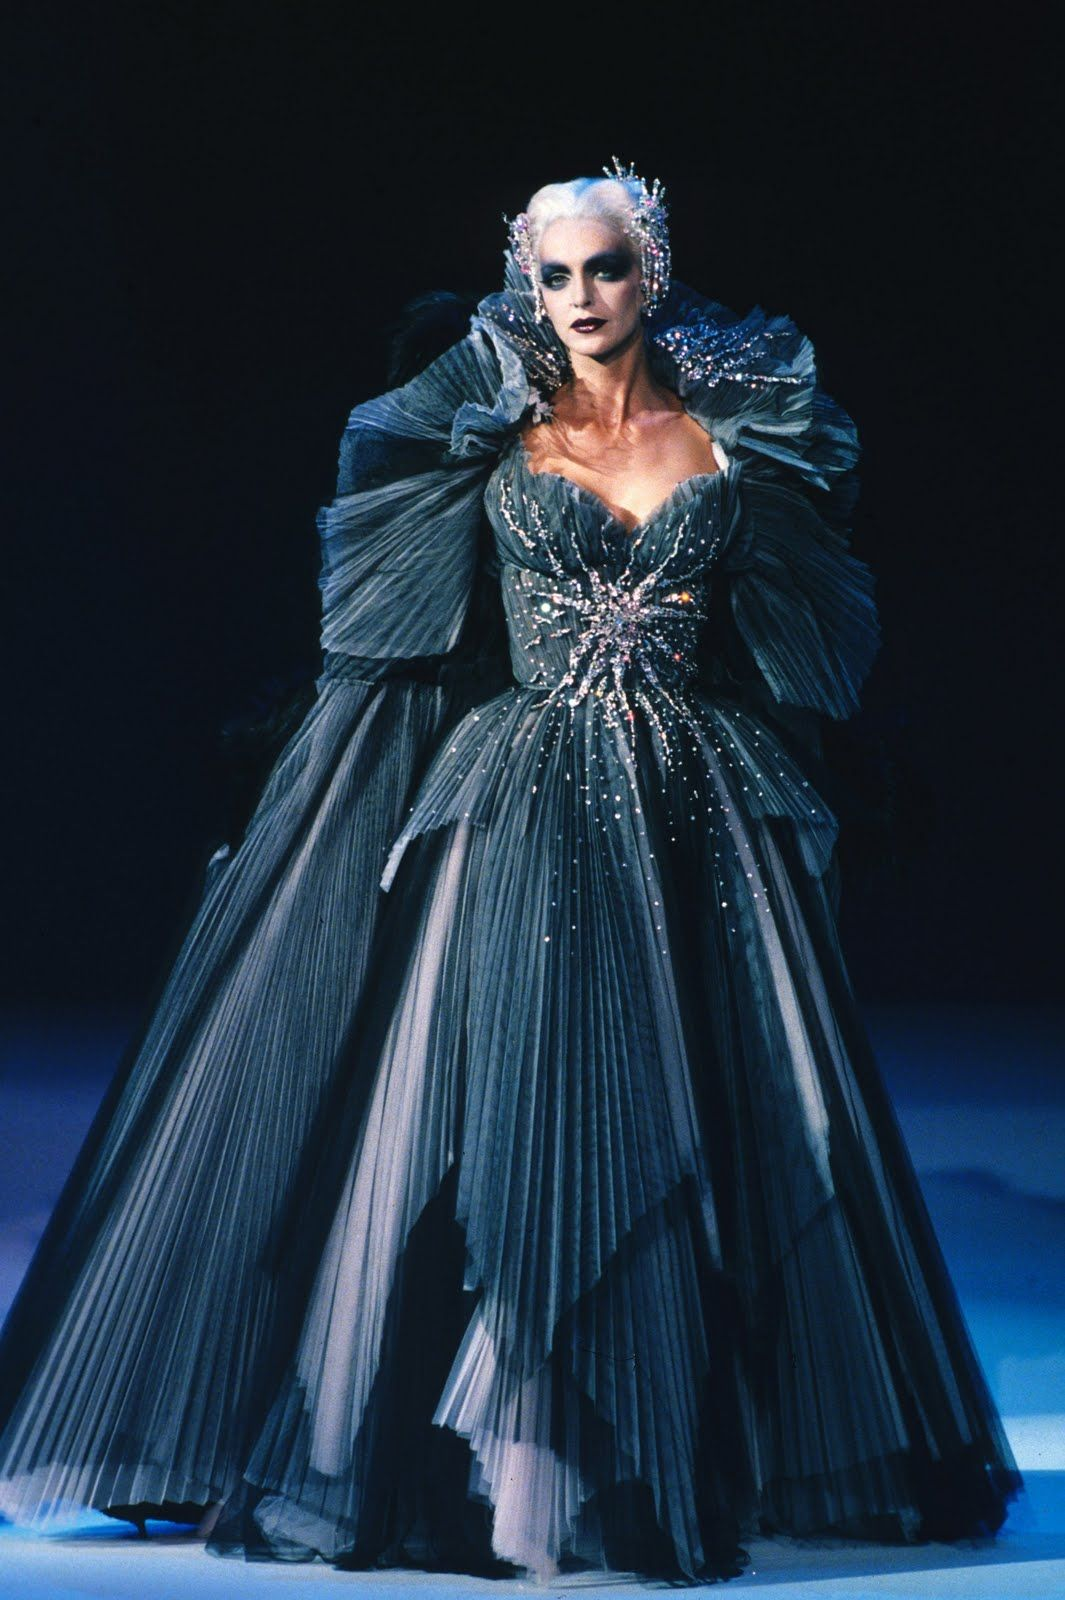 Thierry Mugler this drag queen certainly beats up the \